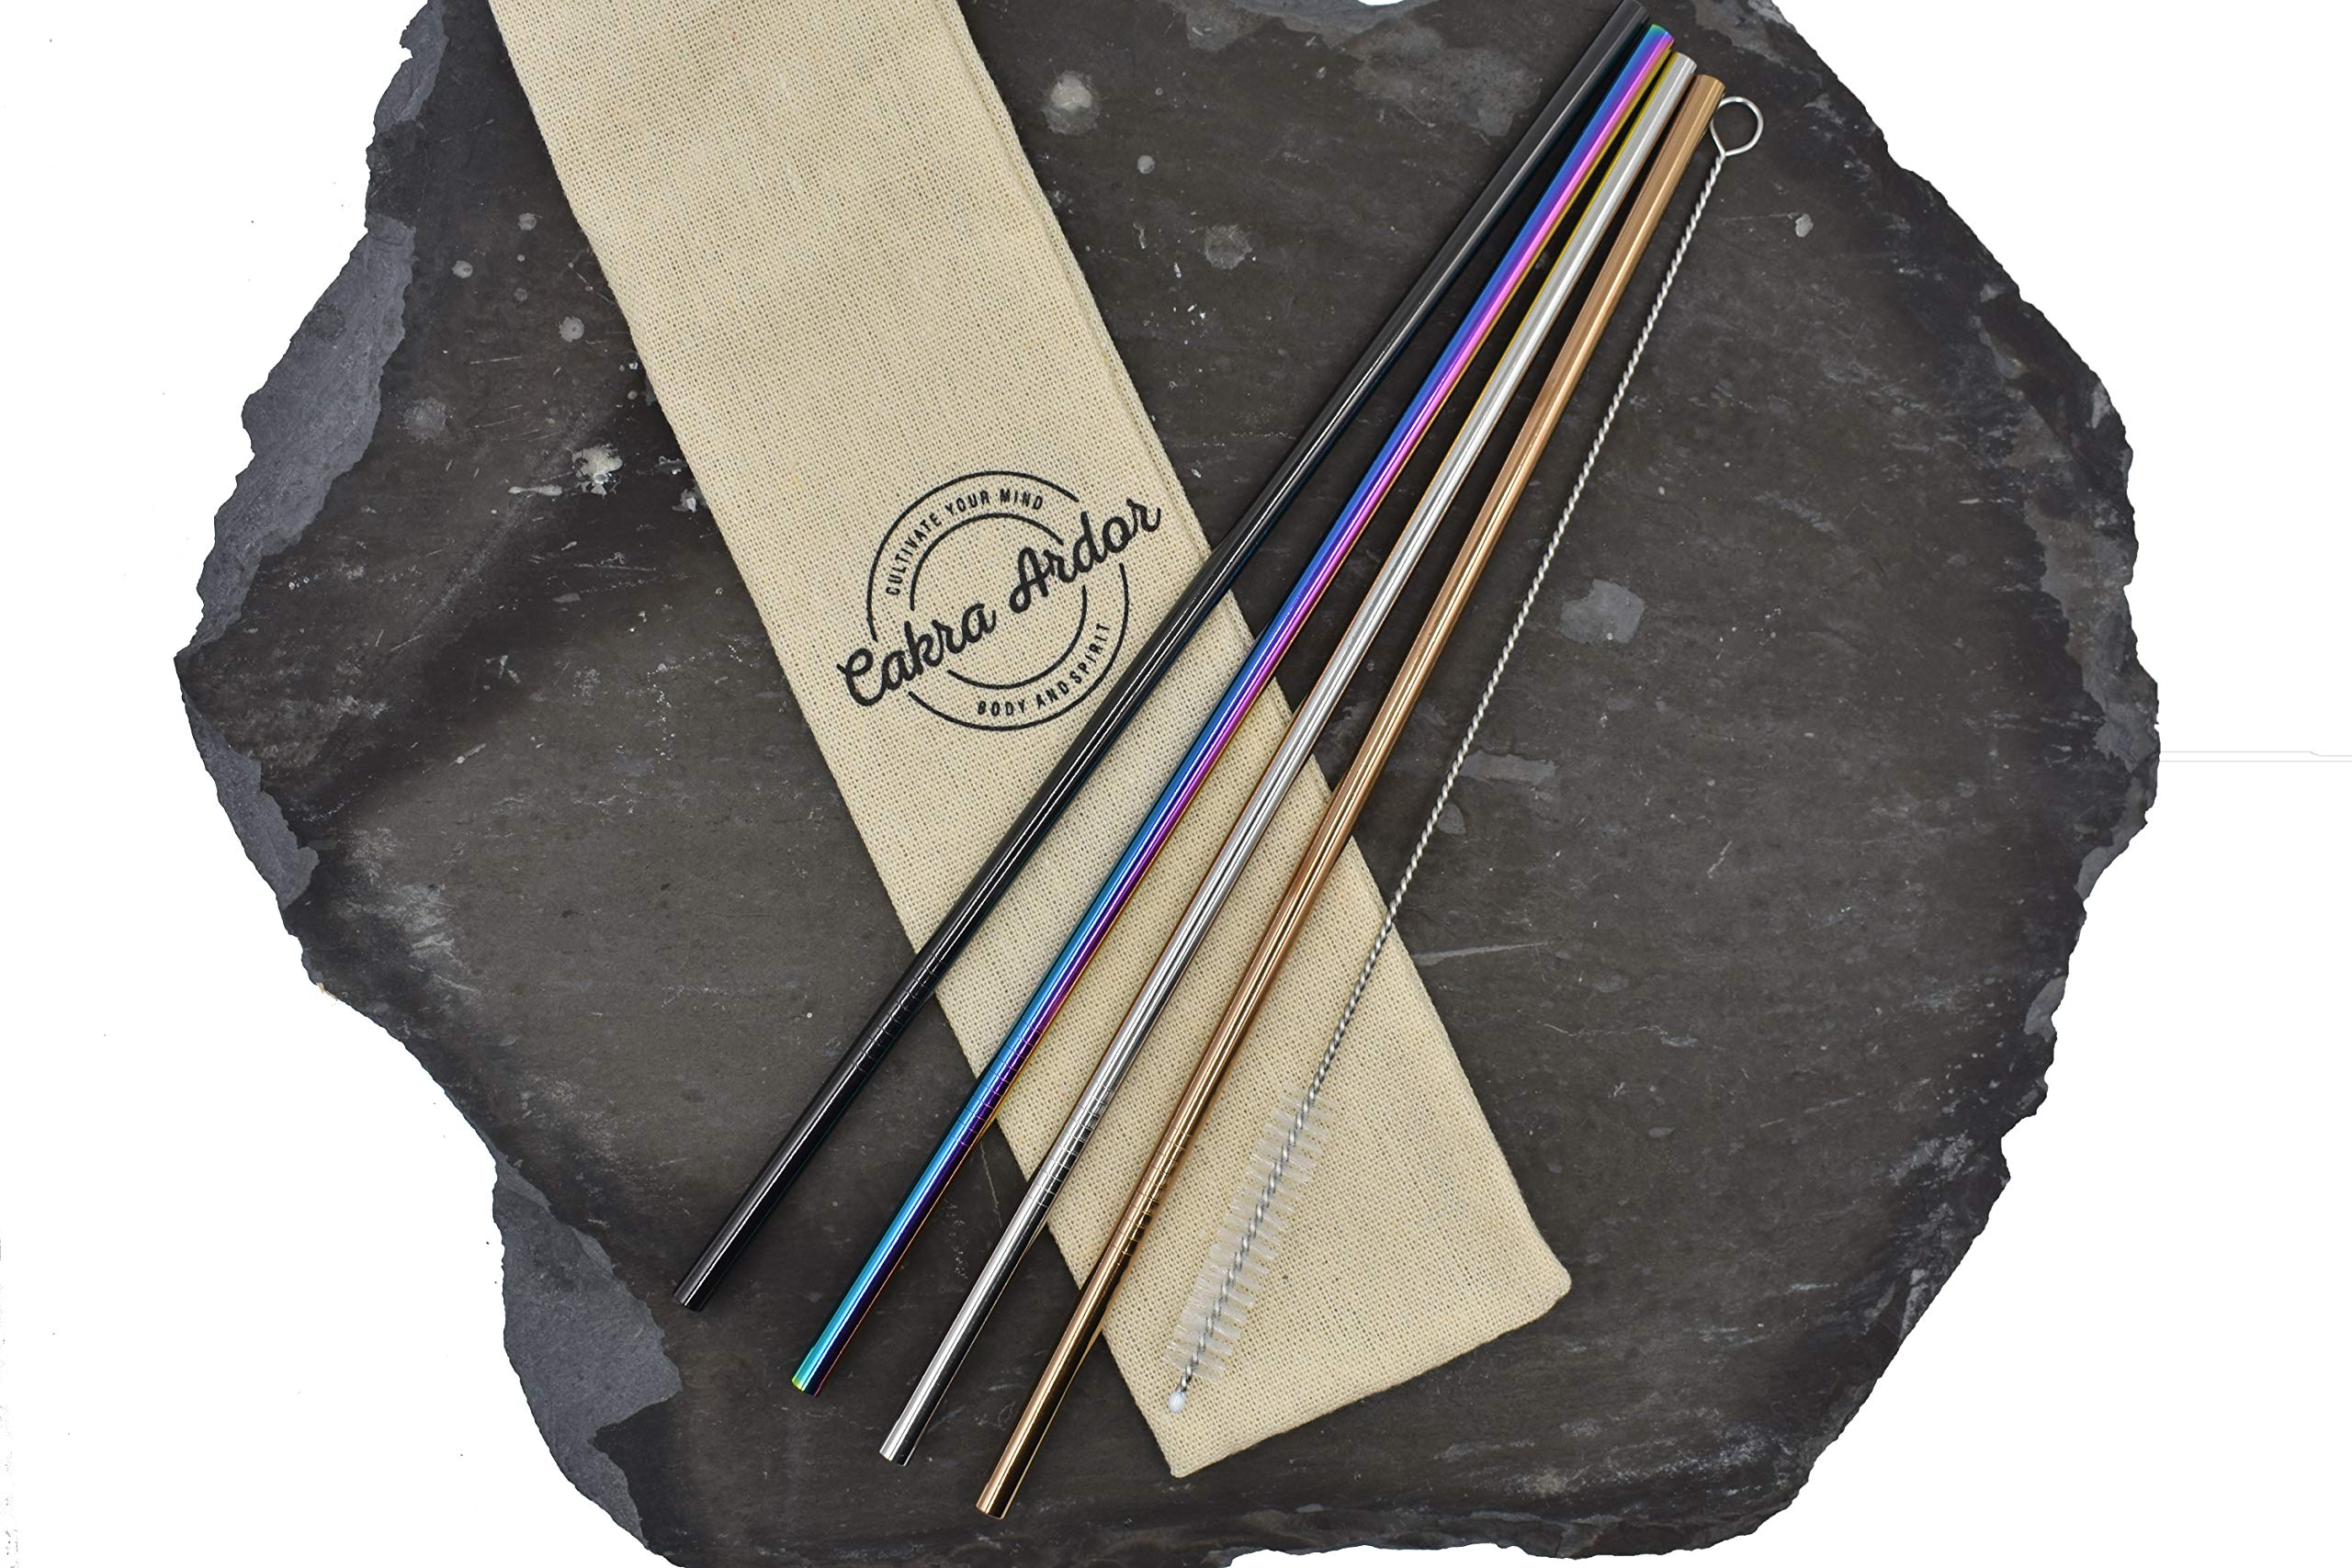 Environmentally Friendly Reusable Colored Stainless Steel Drinking Straw Set for 20oz Tumblers/Cups